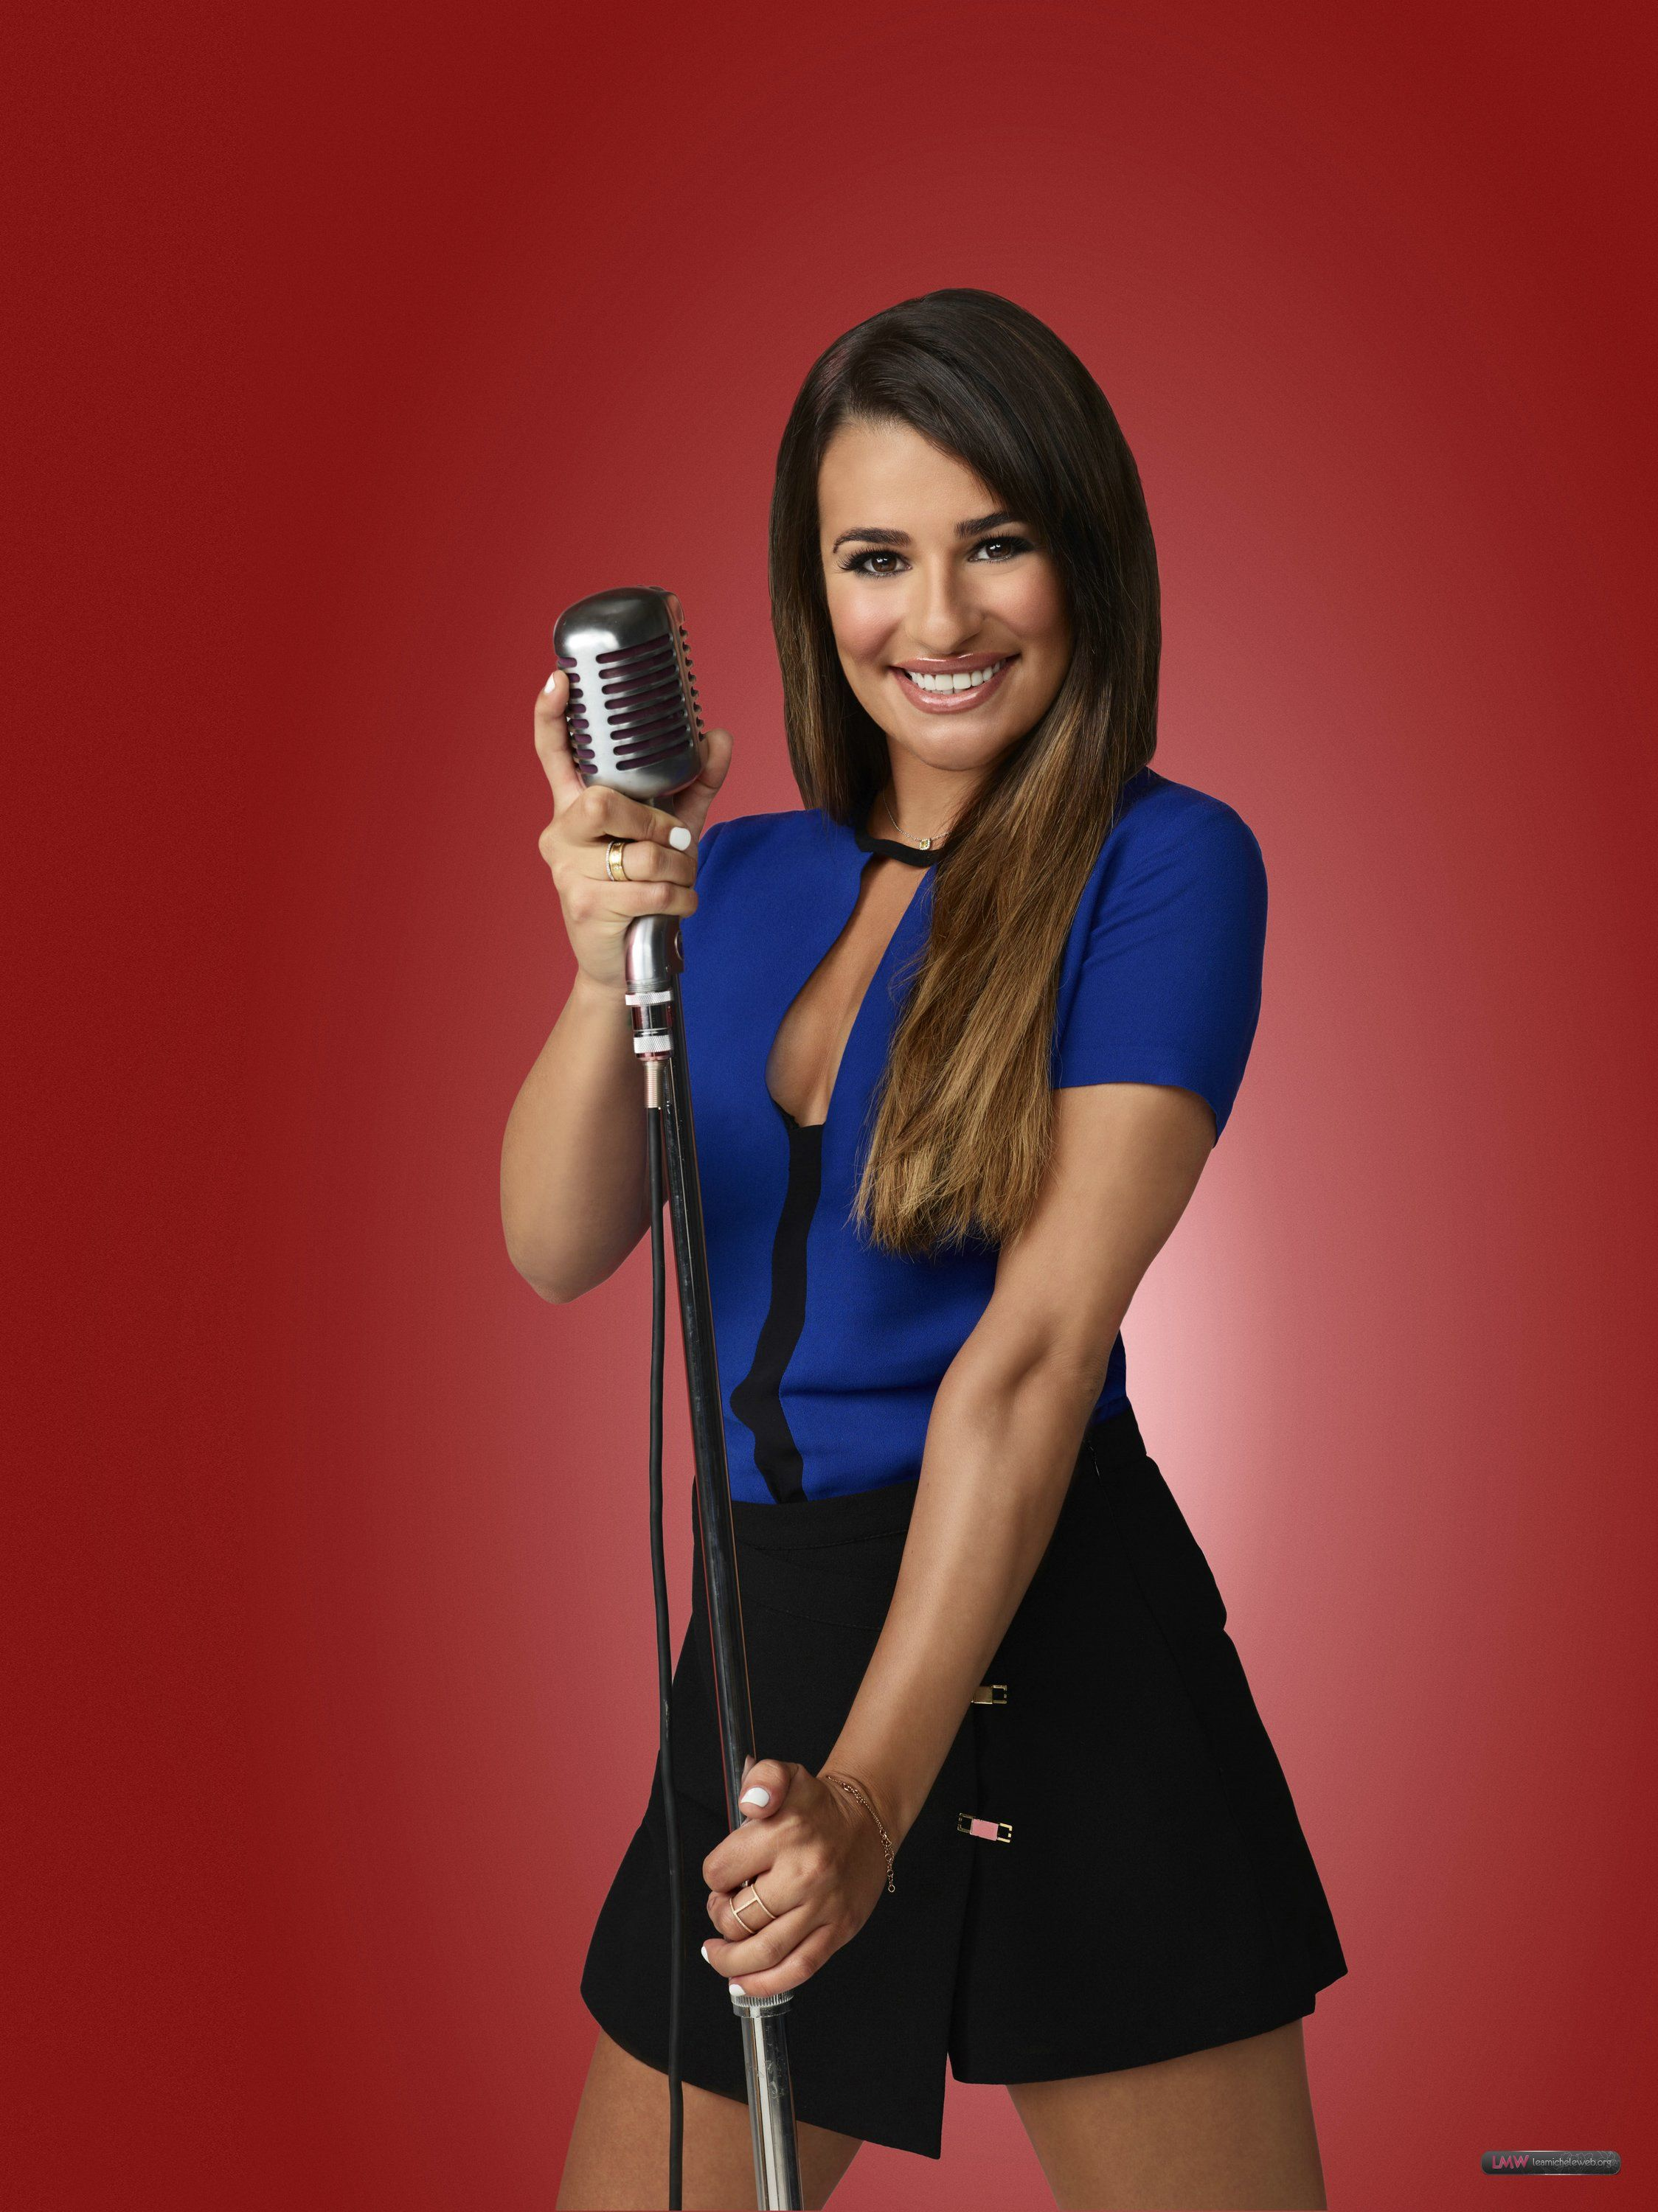 lea michele glee season 5 promo pics 2 celebrity